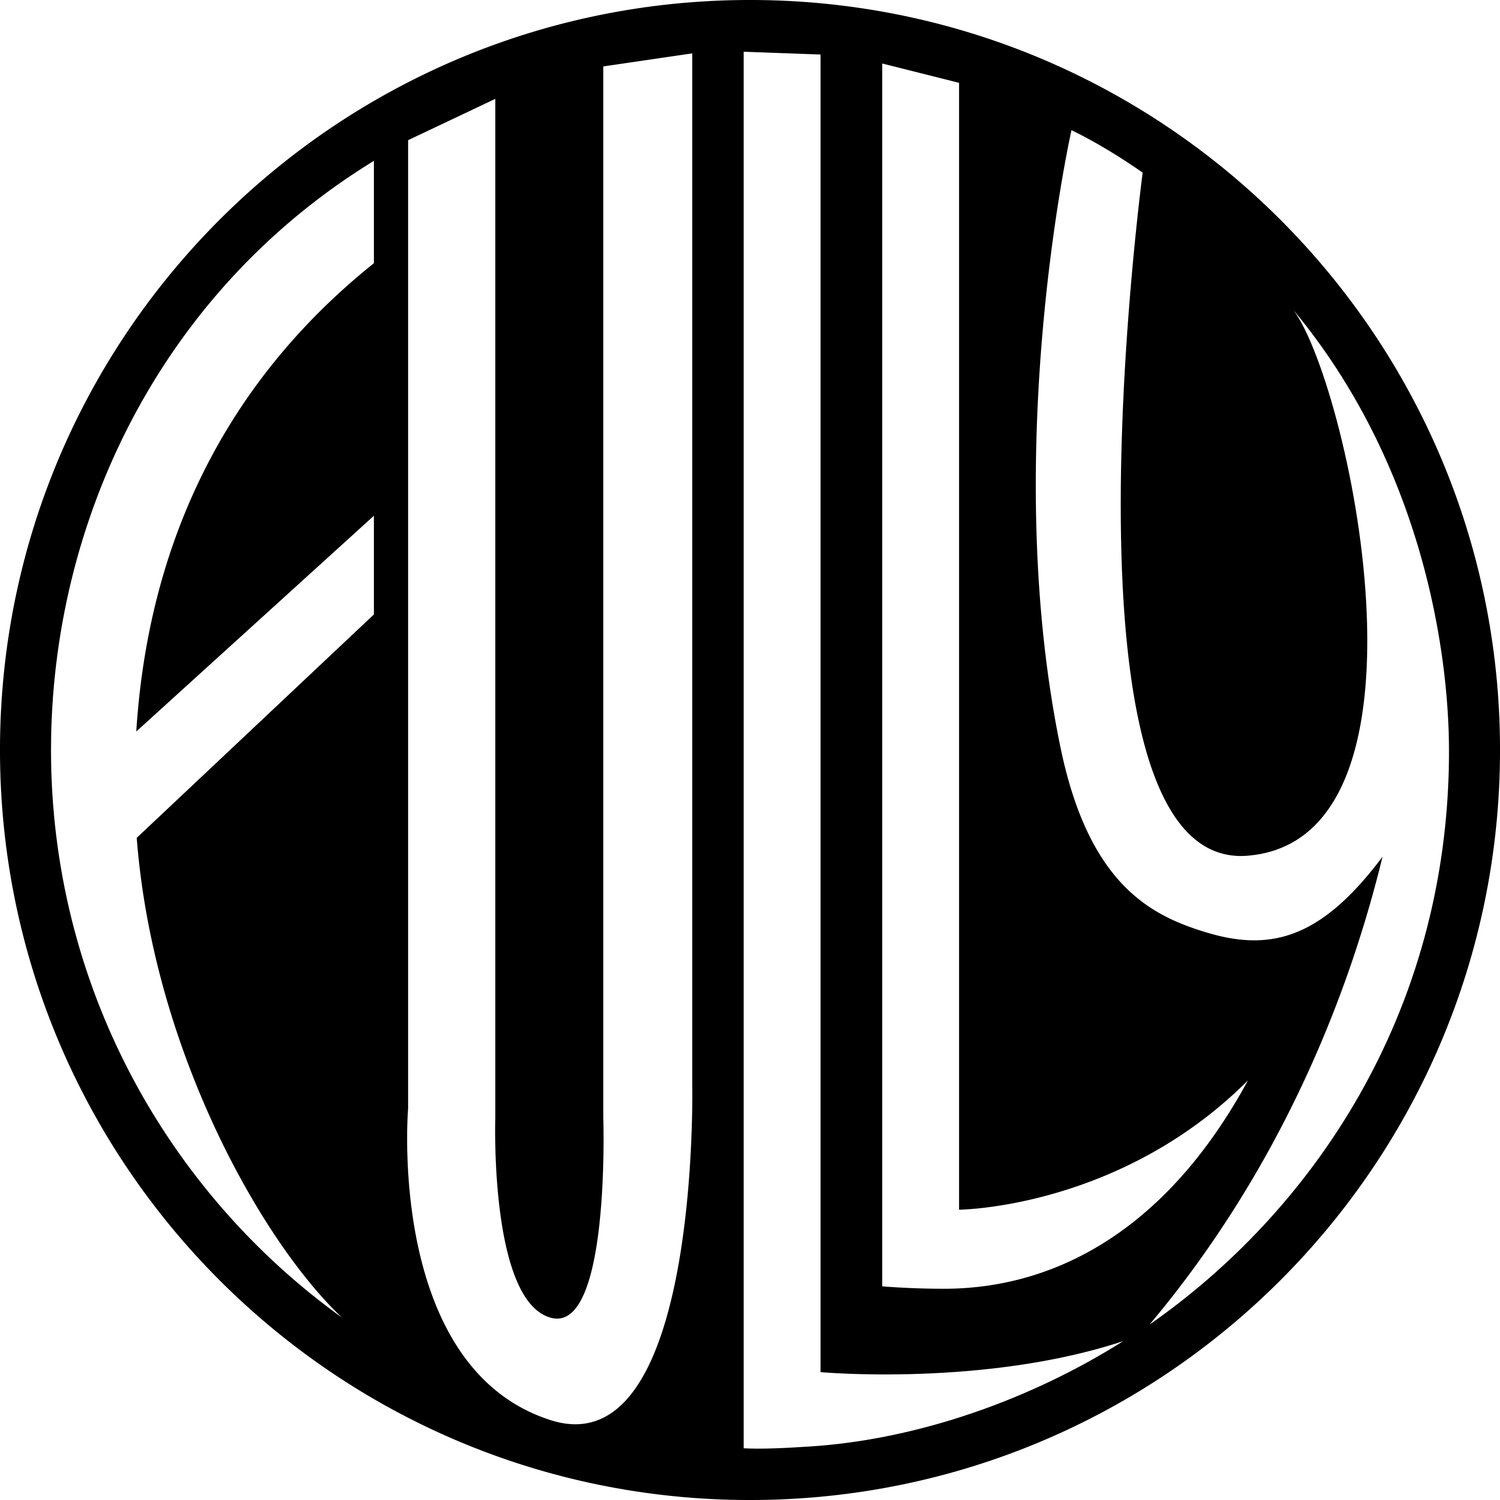 Fully Design Co